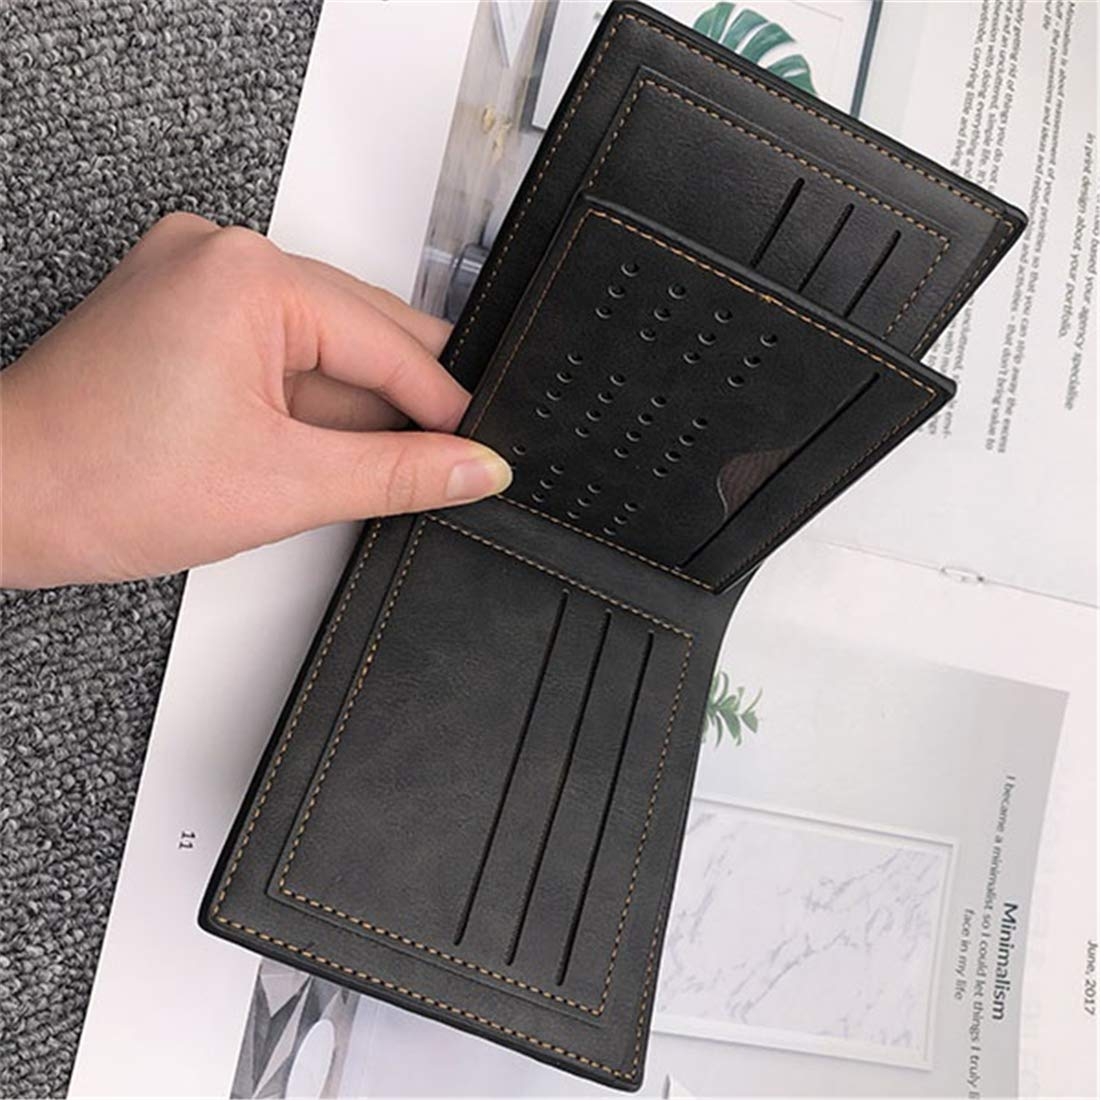 Handmade Slim Mens Wallet Credit Card Holder with ID Window Fathers Day gift Personalized Leather Trifold Wallets for Men